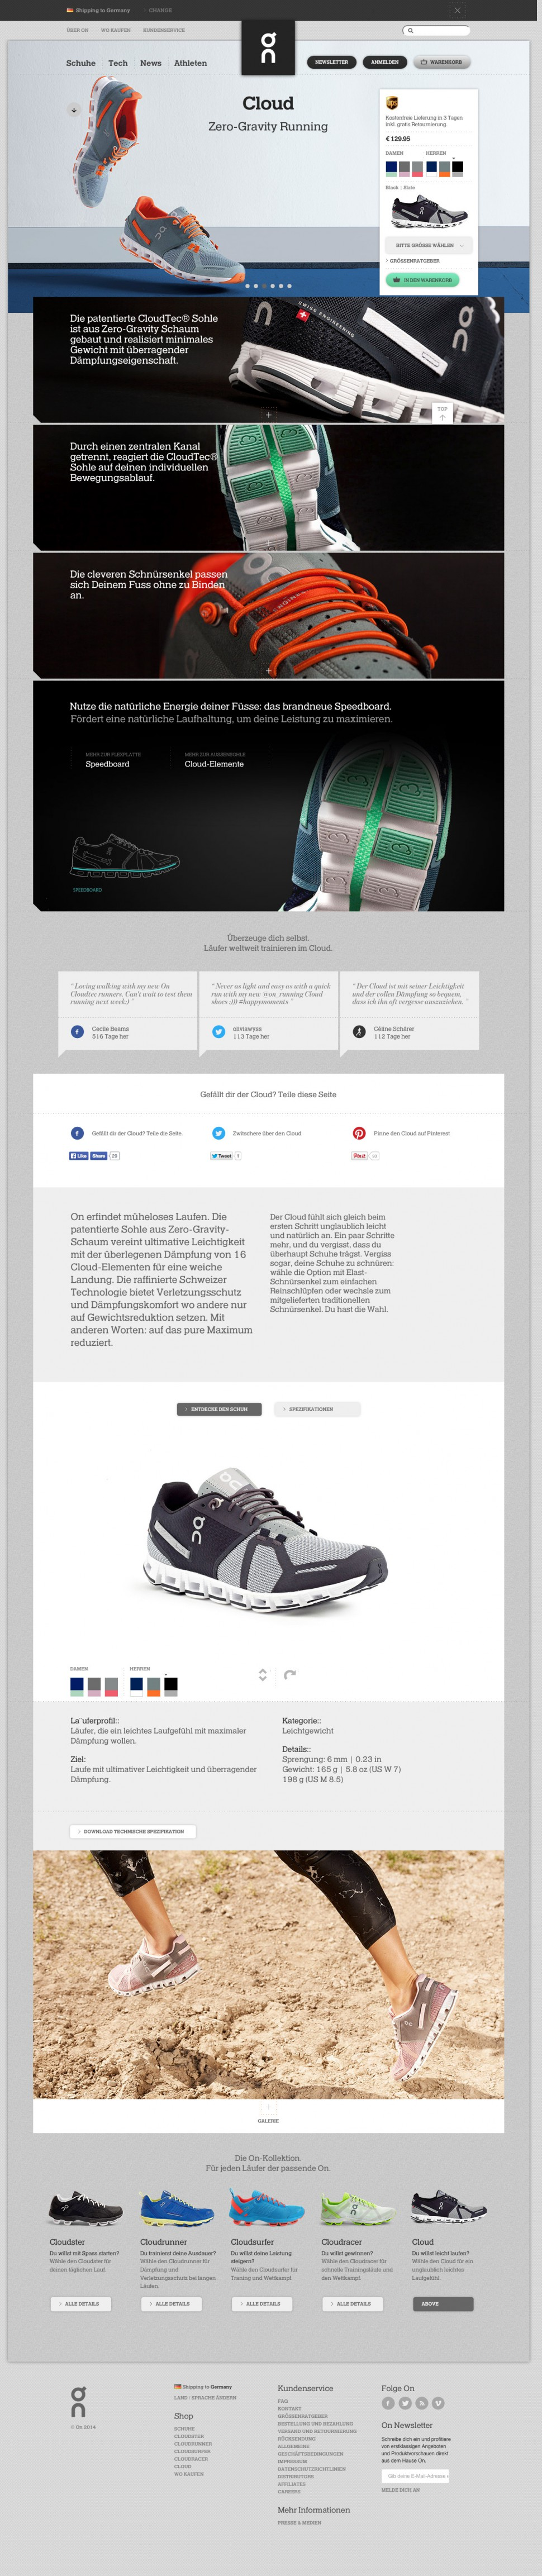 On Running - Product Page